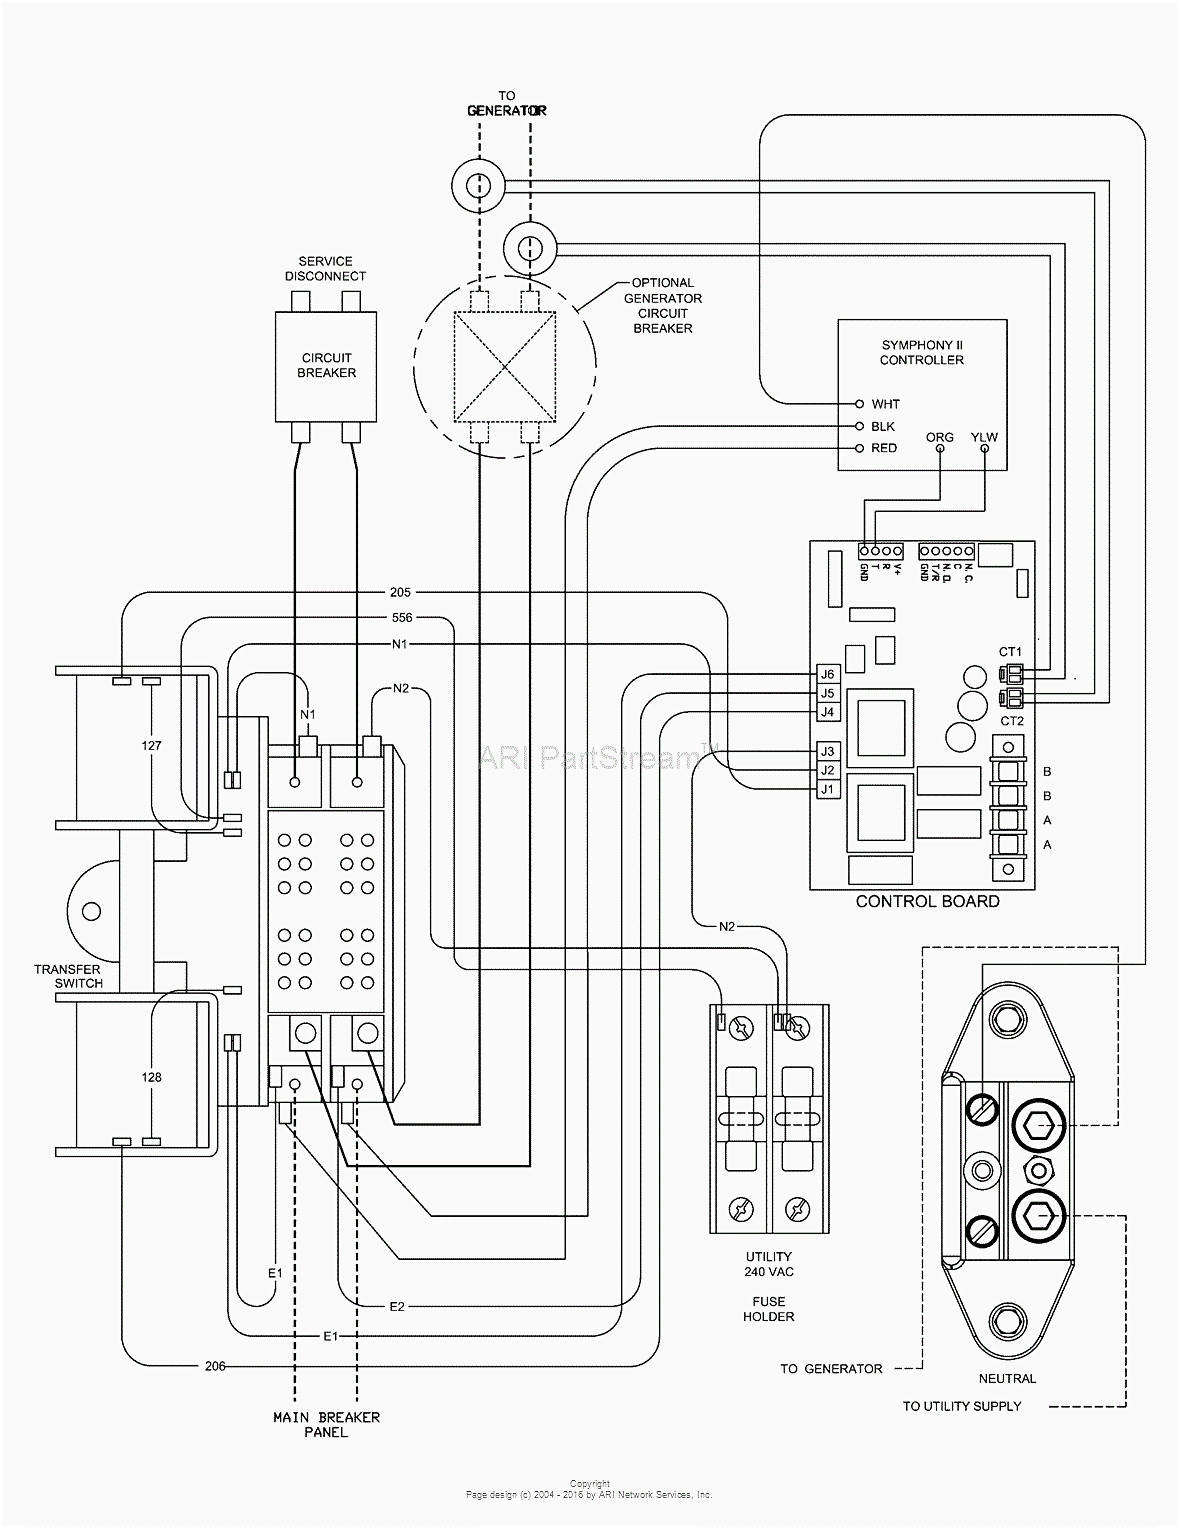 200 amp automatic transfer switch wiring diagram Download-Generac 200 Amp Automatic Transfer Switch Wiring Diagram Generator Automatic Transfer Switch Wiring Diagram Generac 9-g